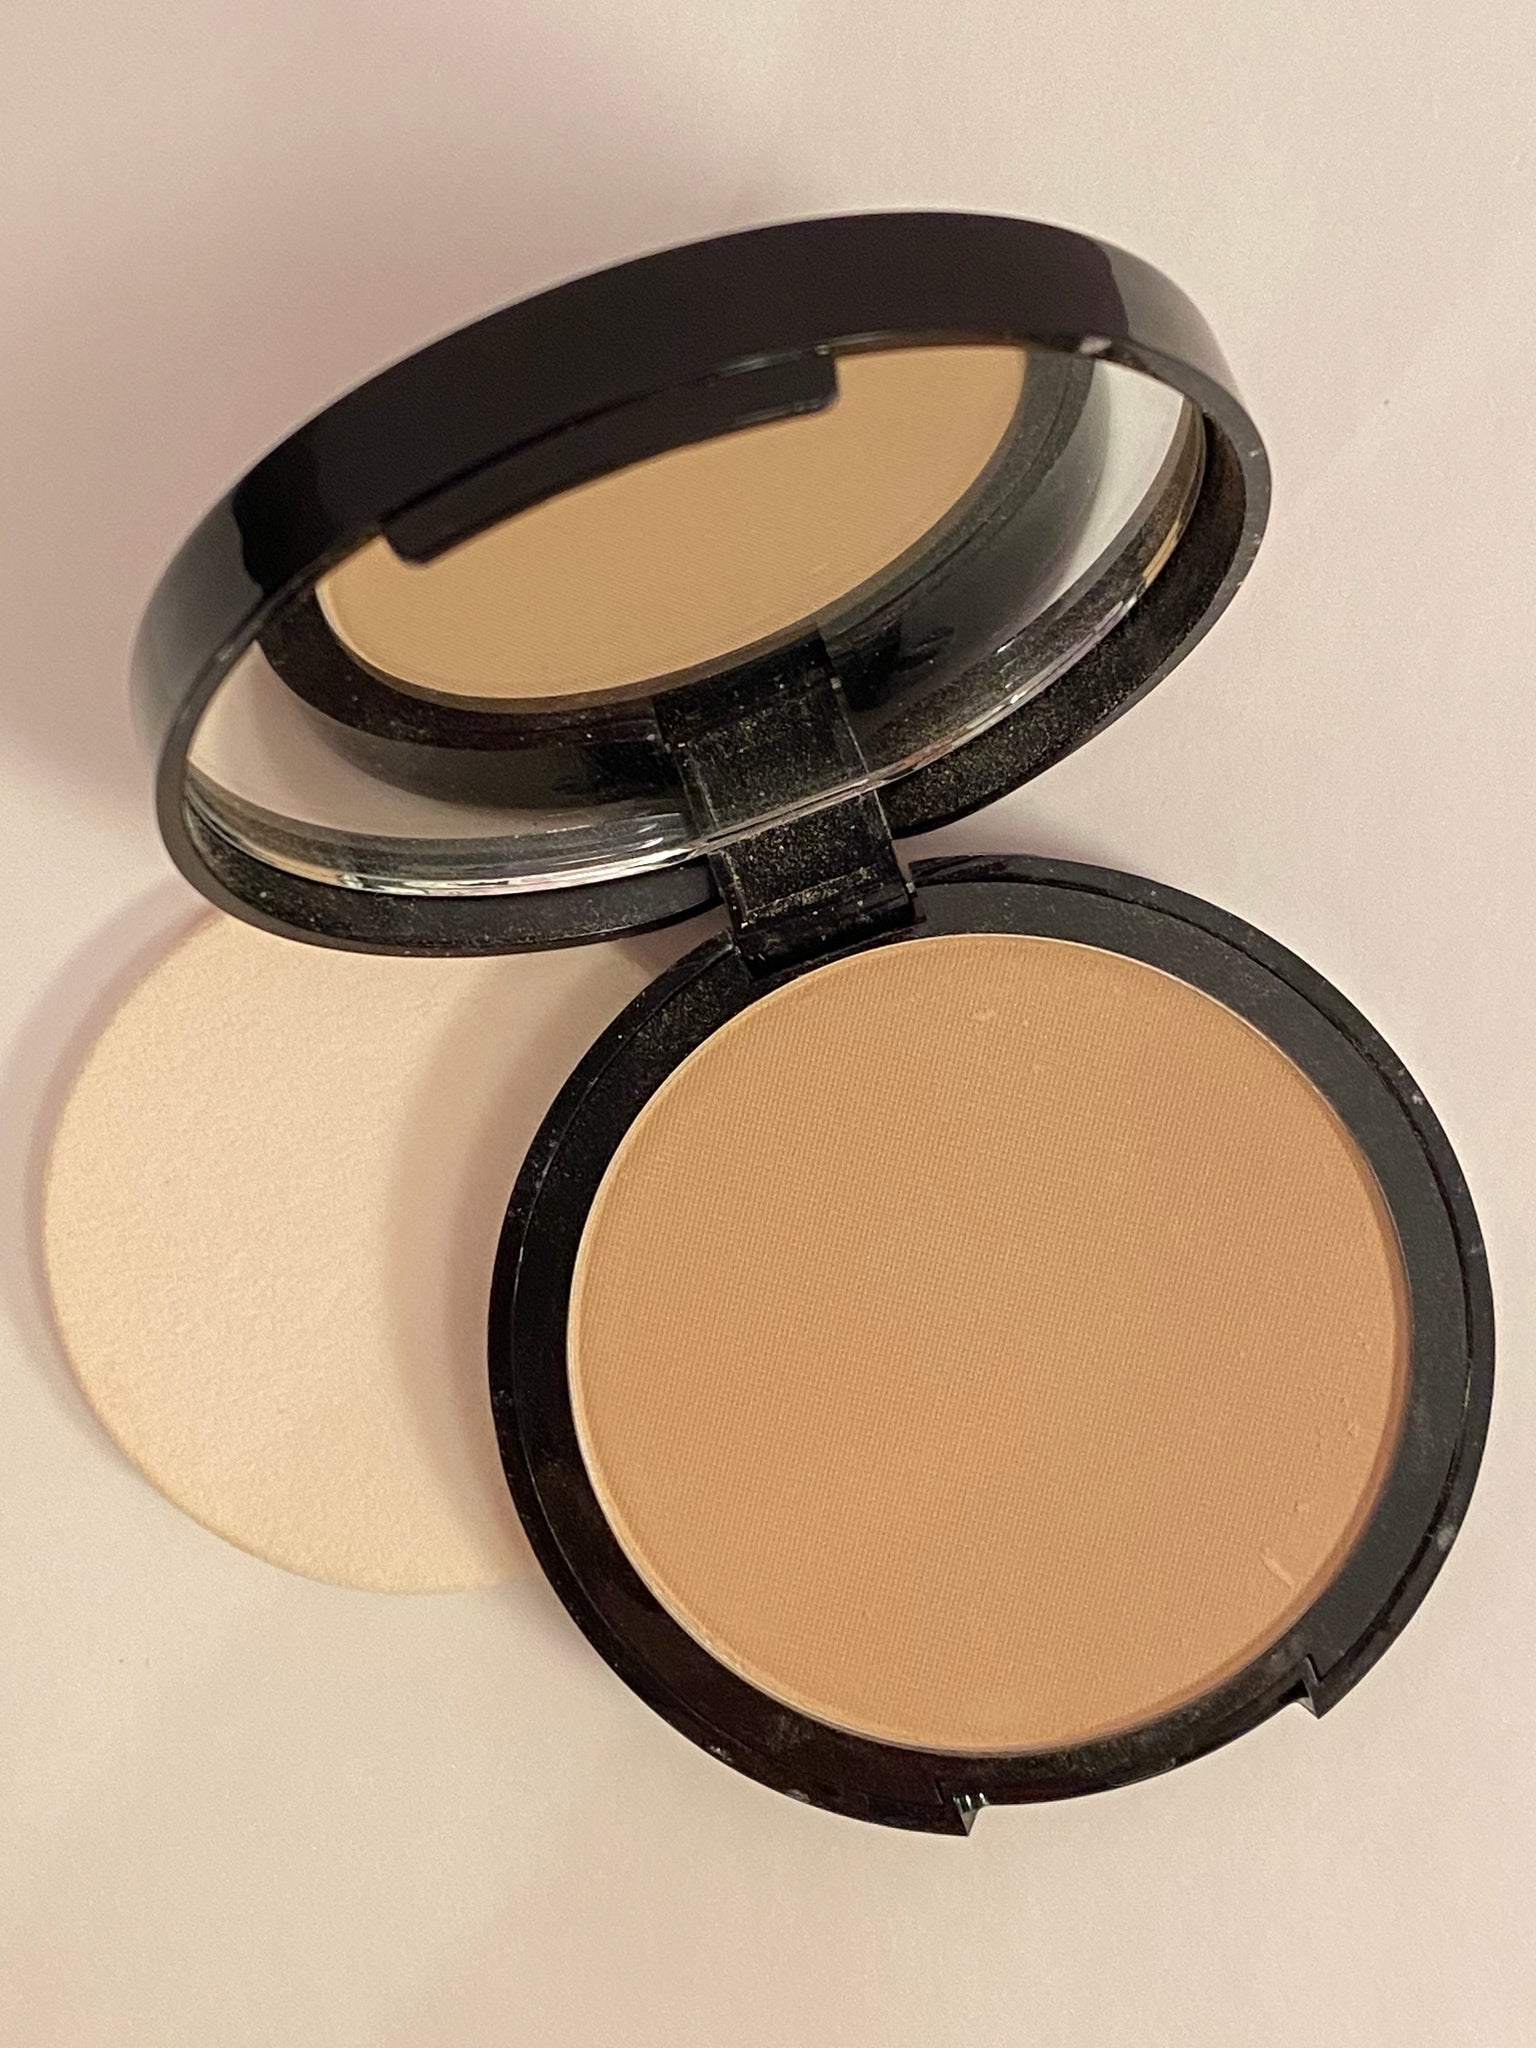 Dual-Activ Powder Foundation in Light Beige